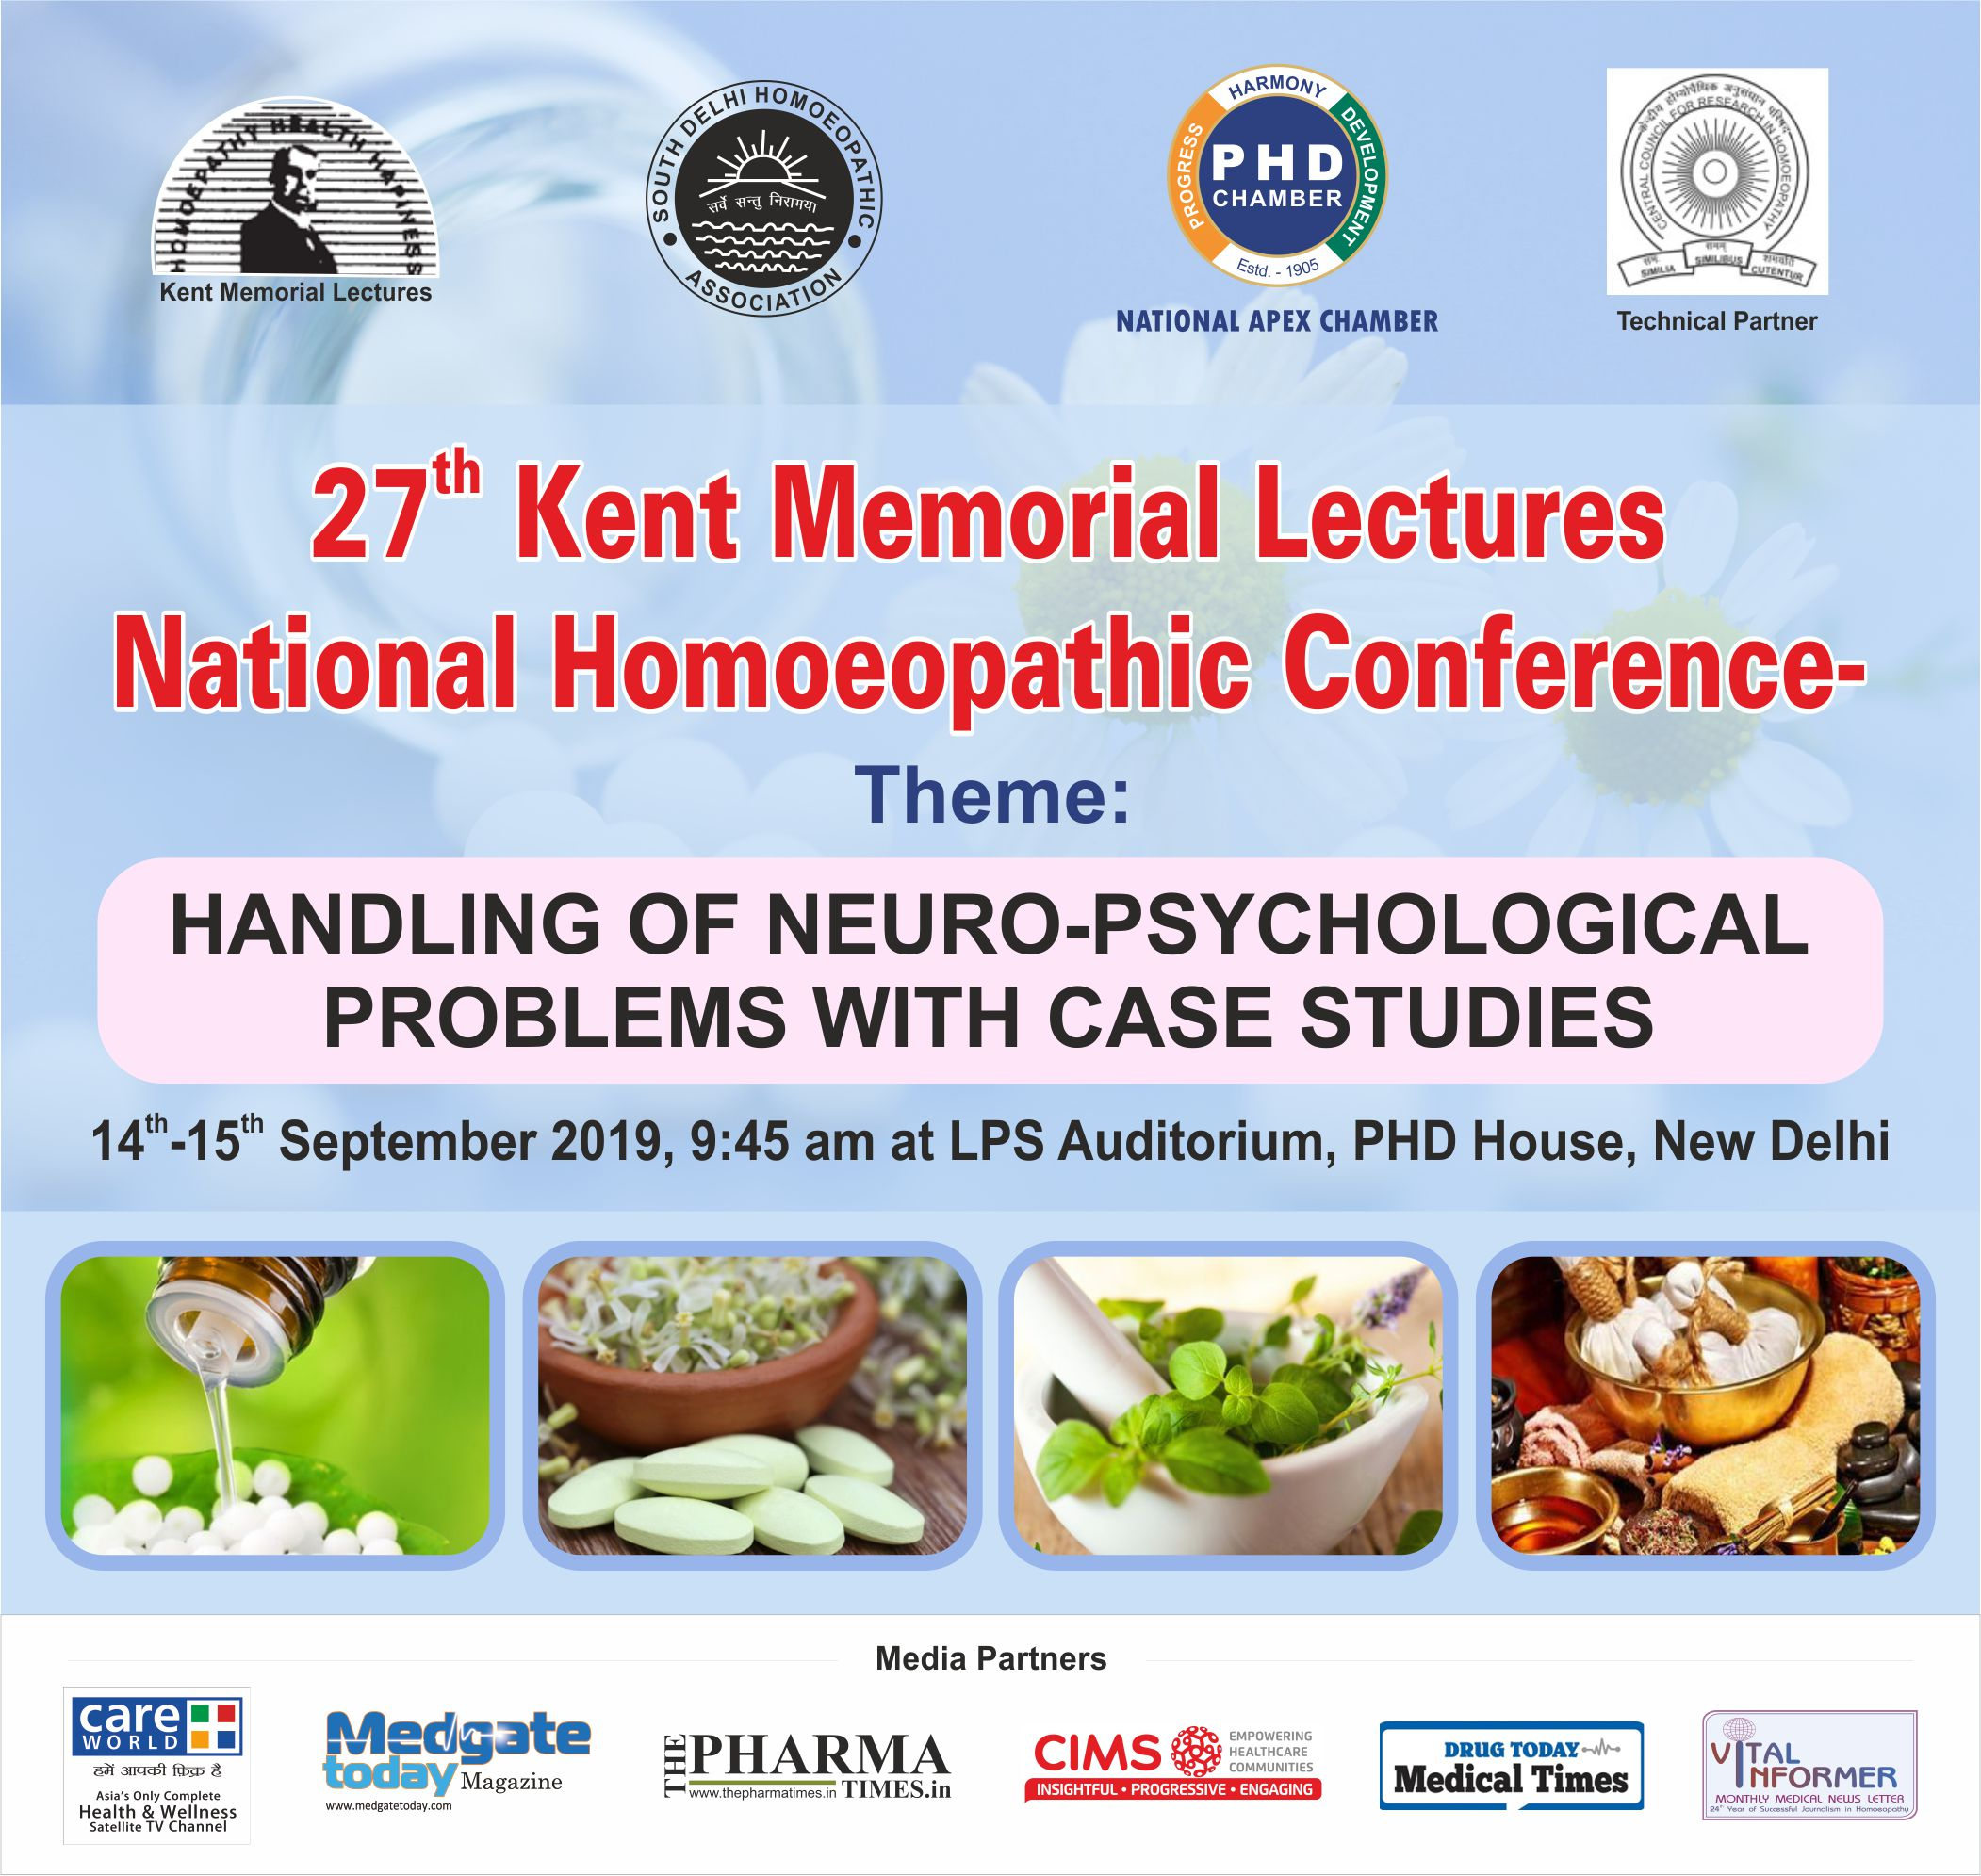 """27th Kent Memorial Lectures National Homoeopathic Conference on Theme-""""Handling of Neuro-Psychological problems with Case Studies"""